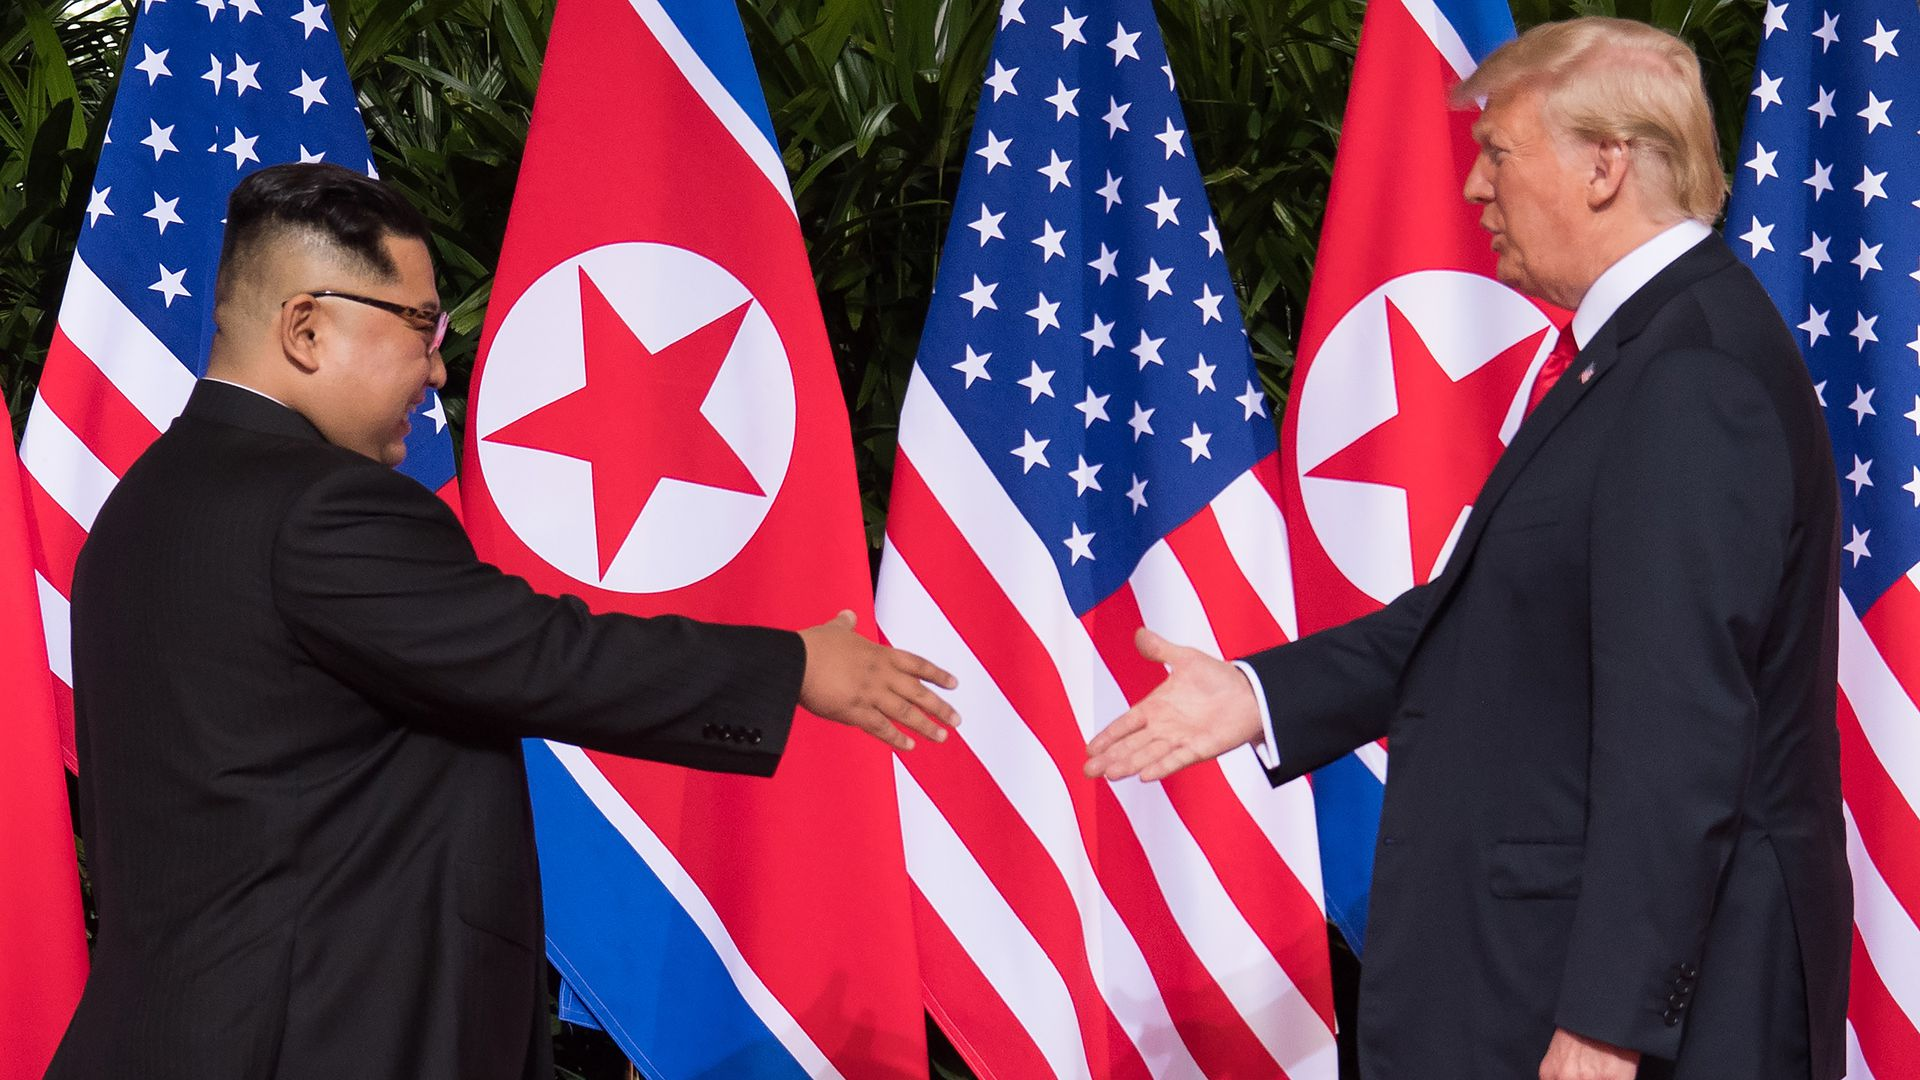 North Korea's leader Kim Jong Un and President Trump